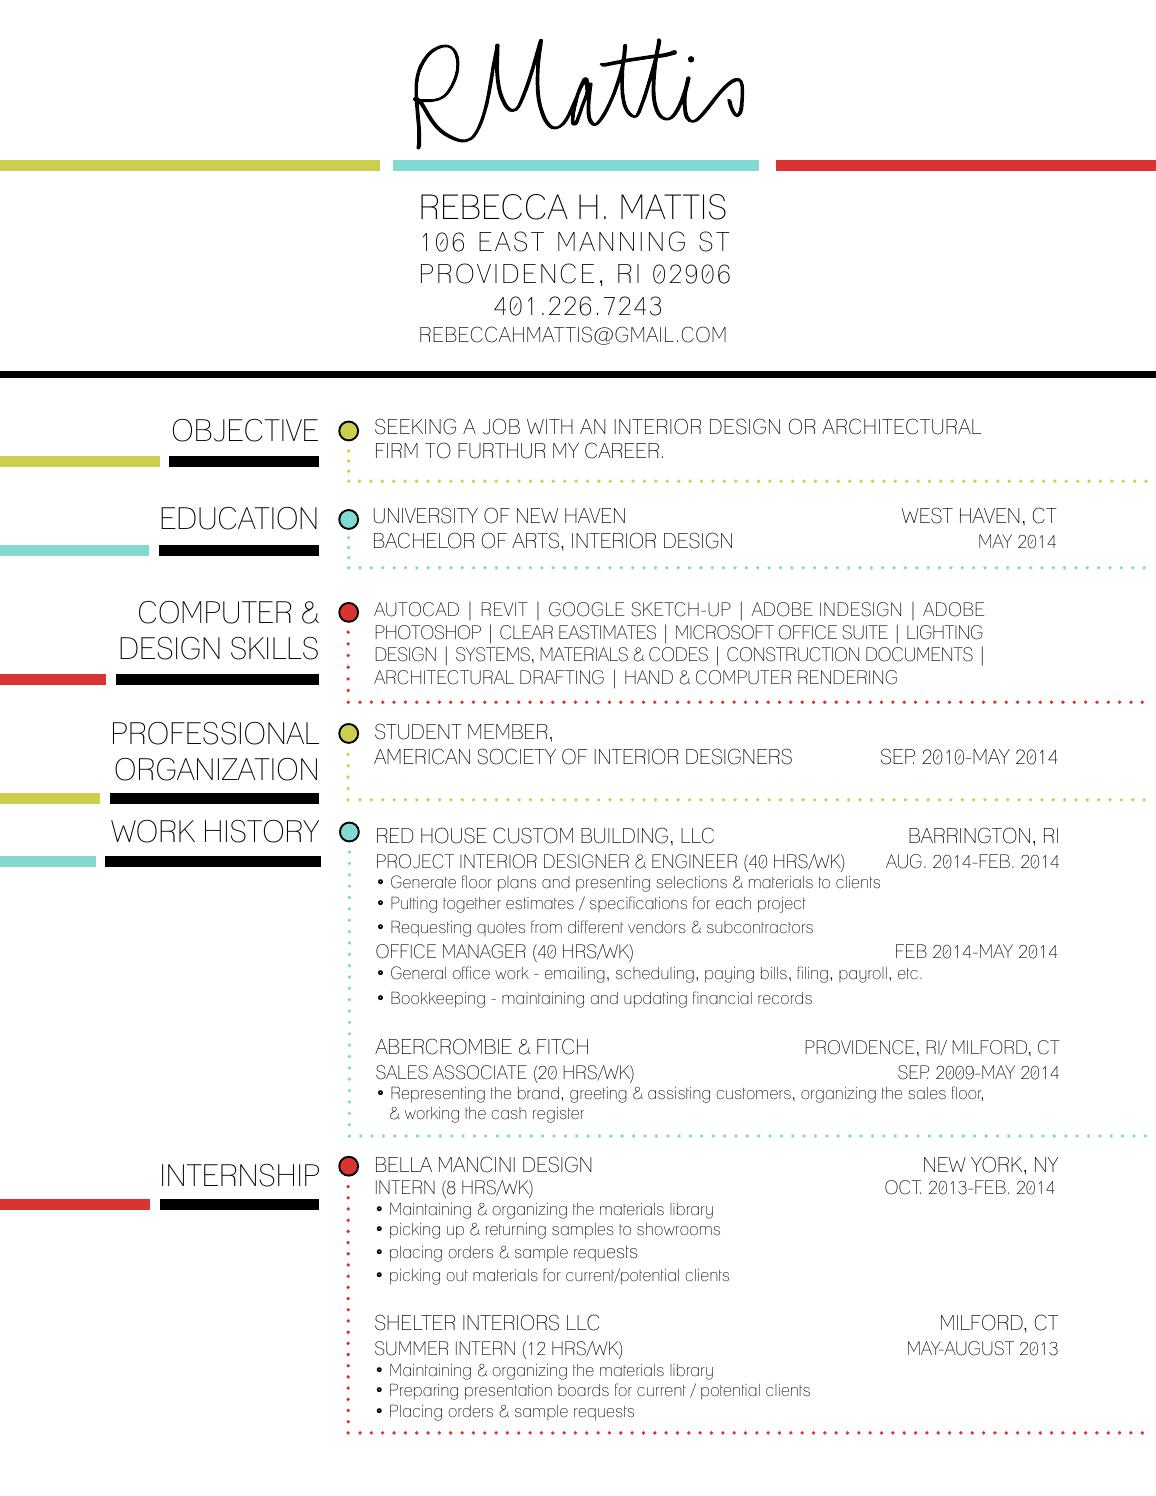 Rebecca Mattis Interior Design Resume By